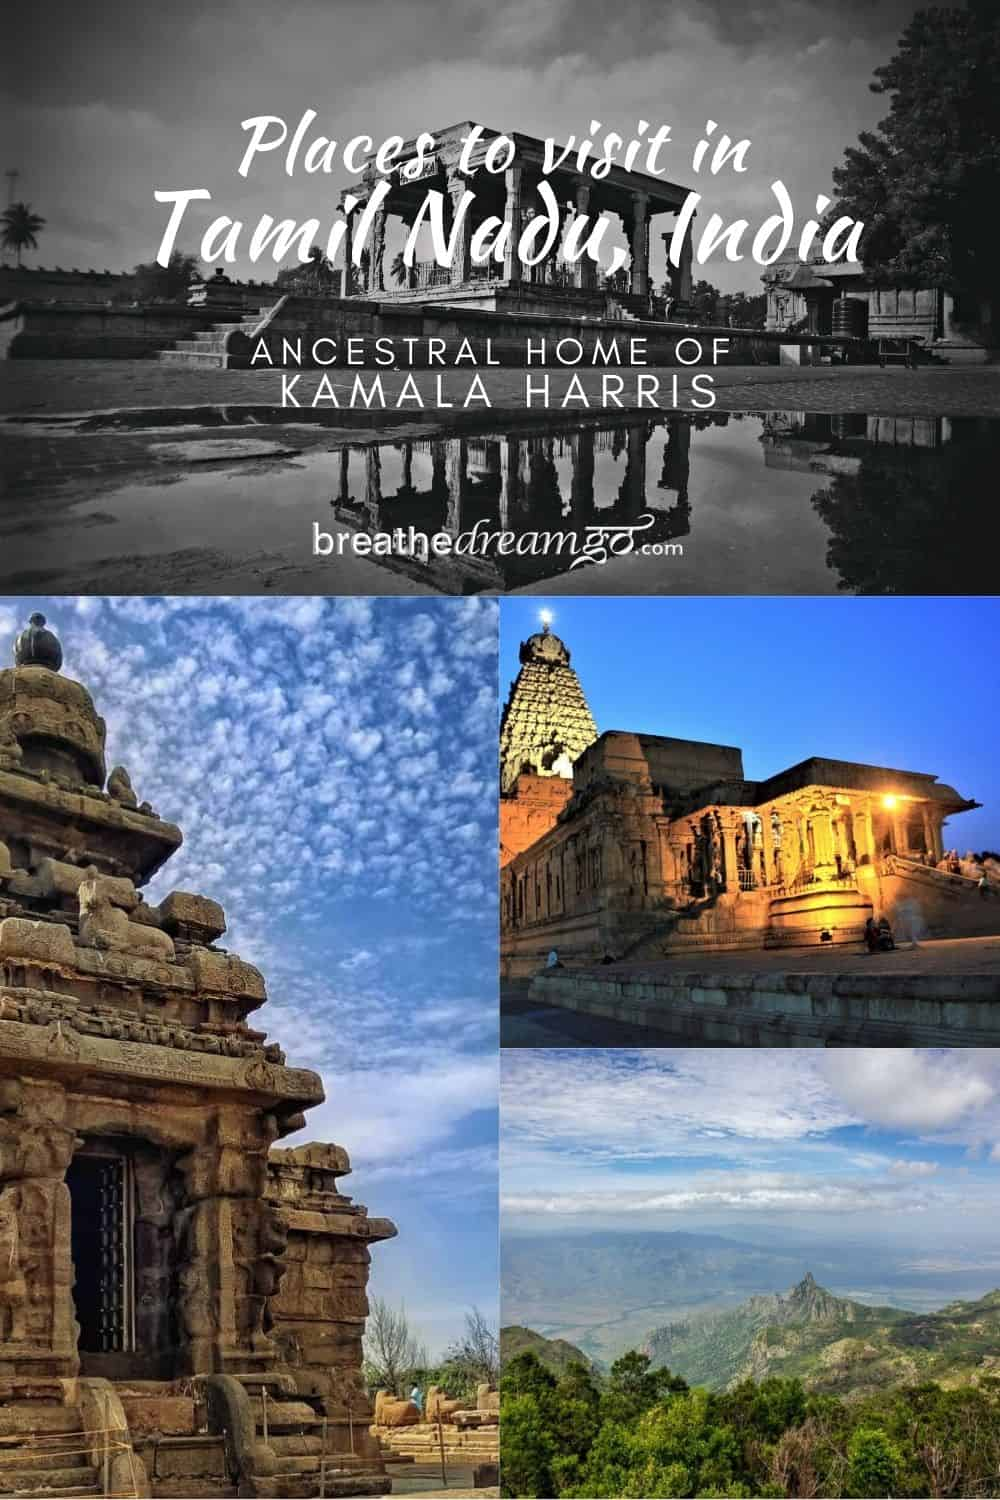 Places to visit in Tamil Nadu, India